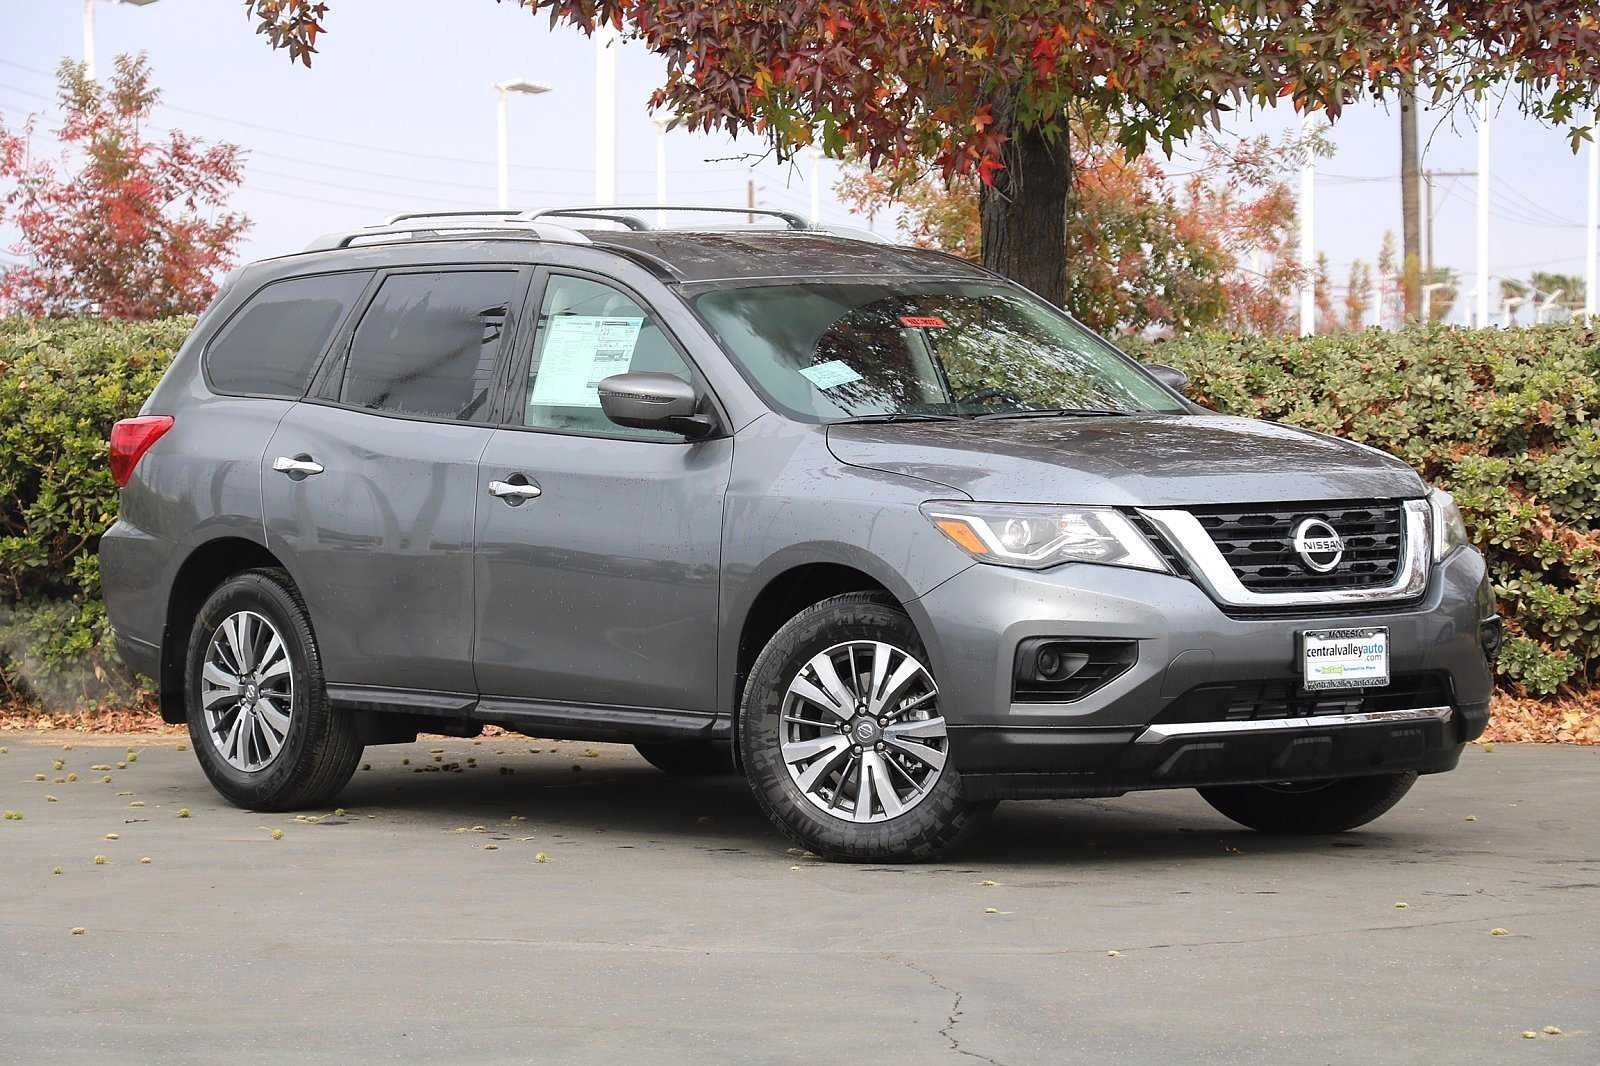 New 2020 Nissan Pathfinder S FWD